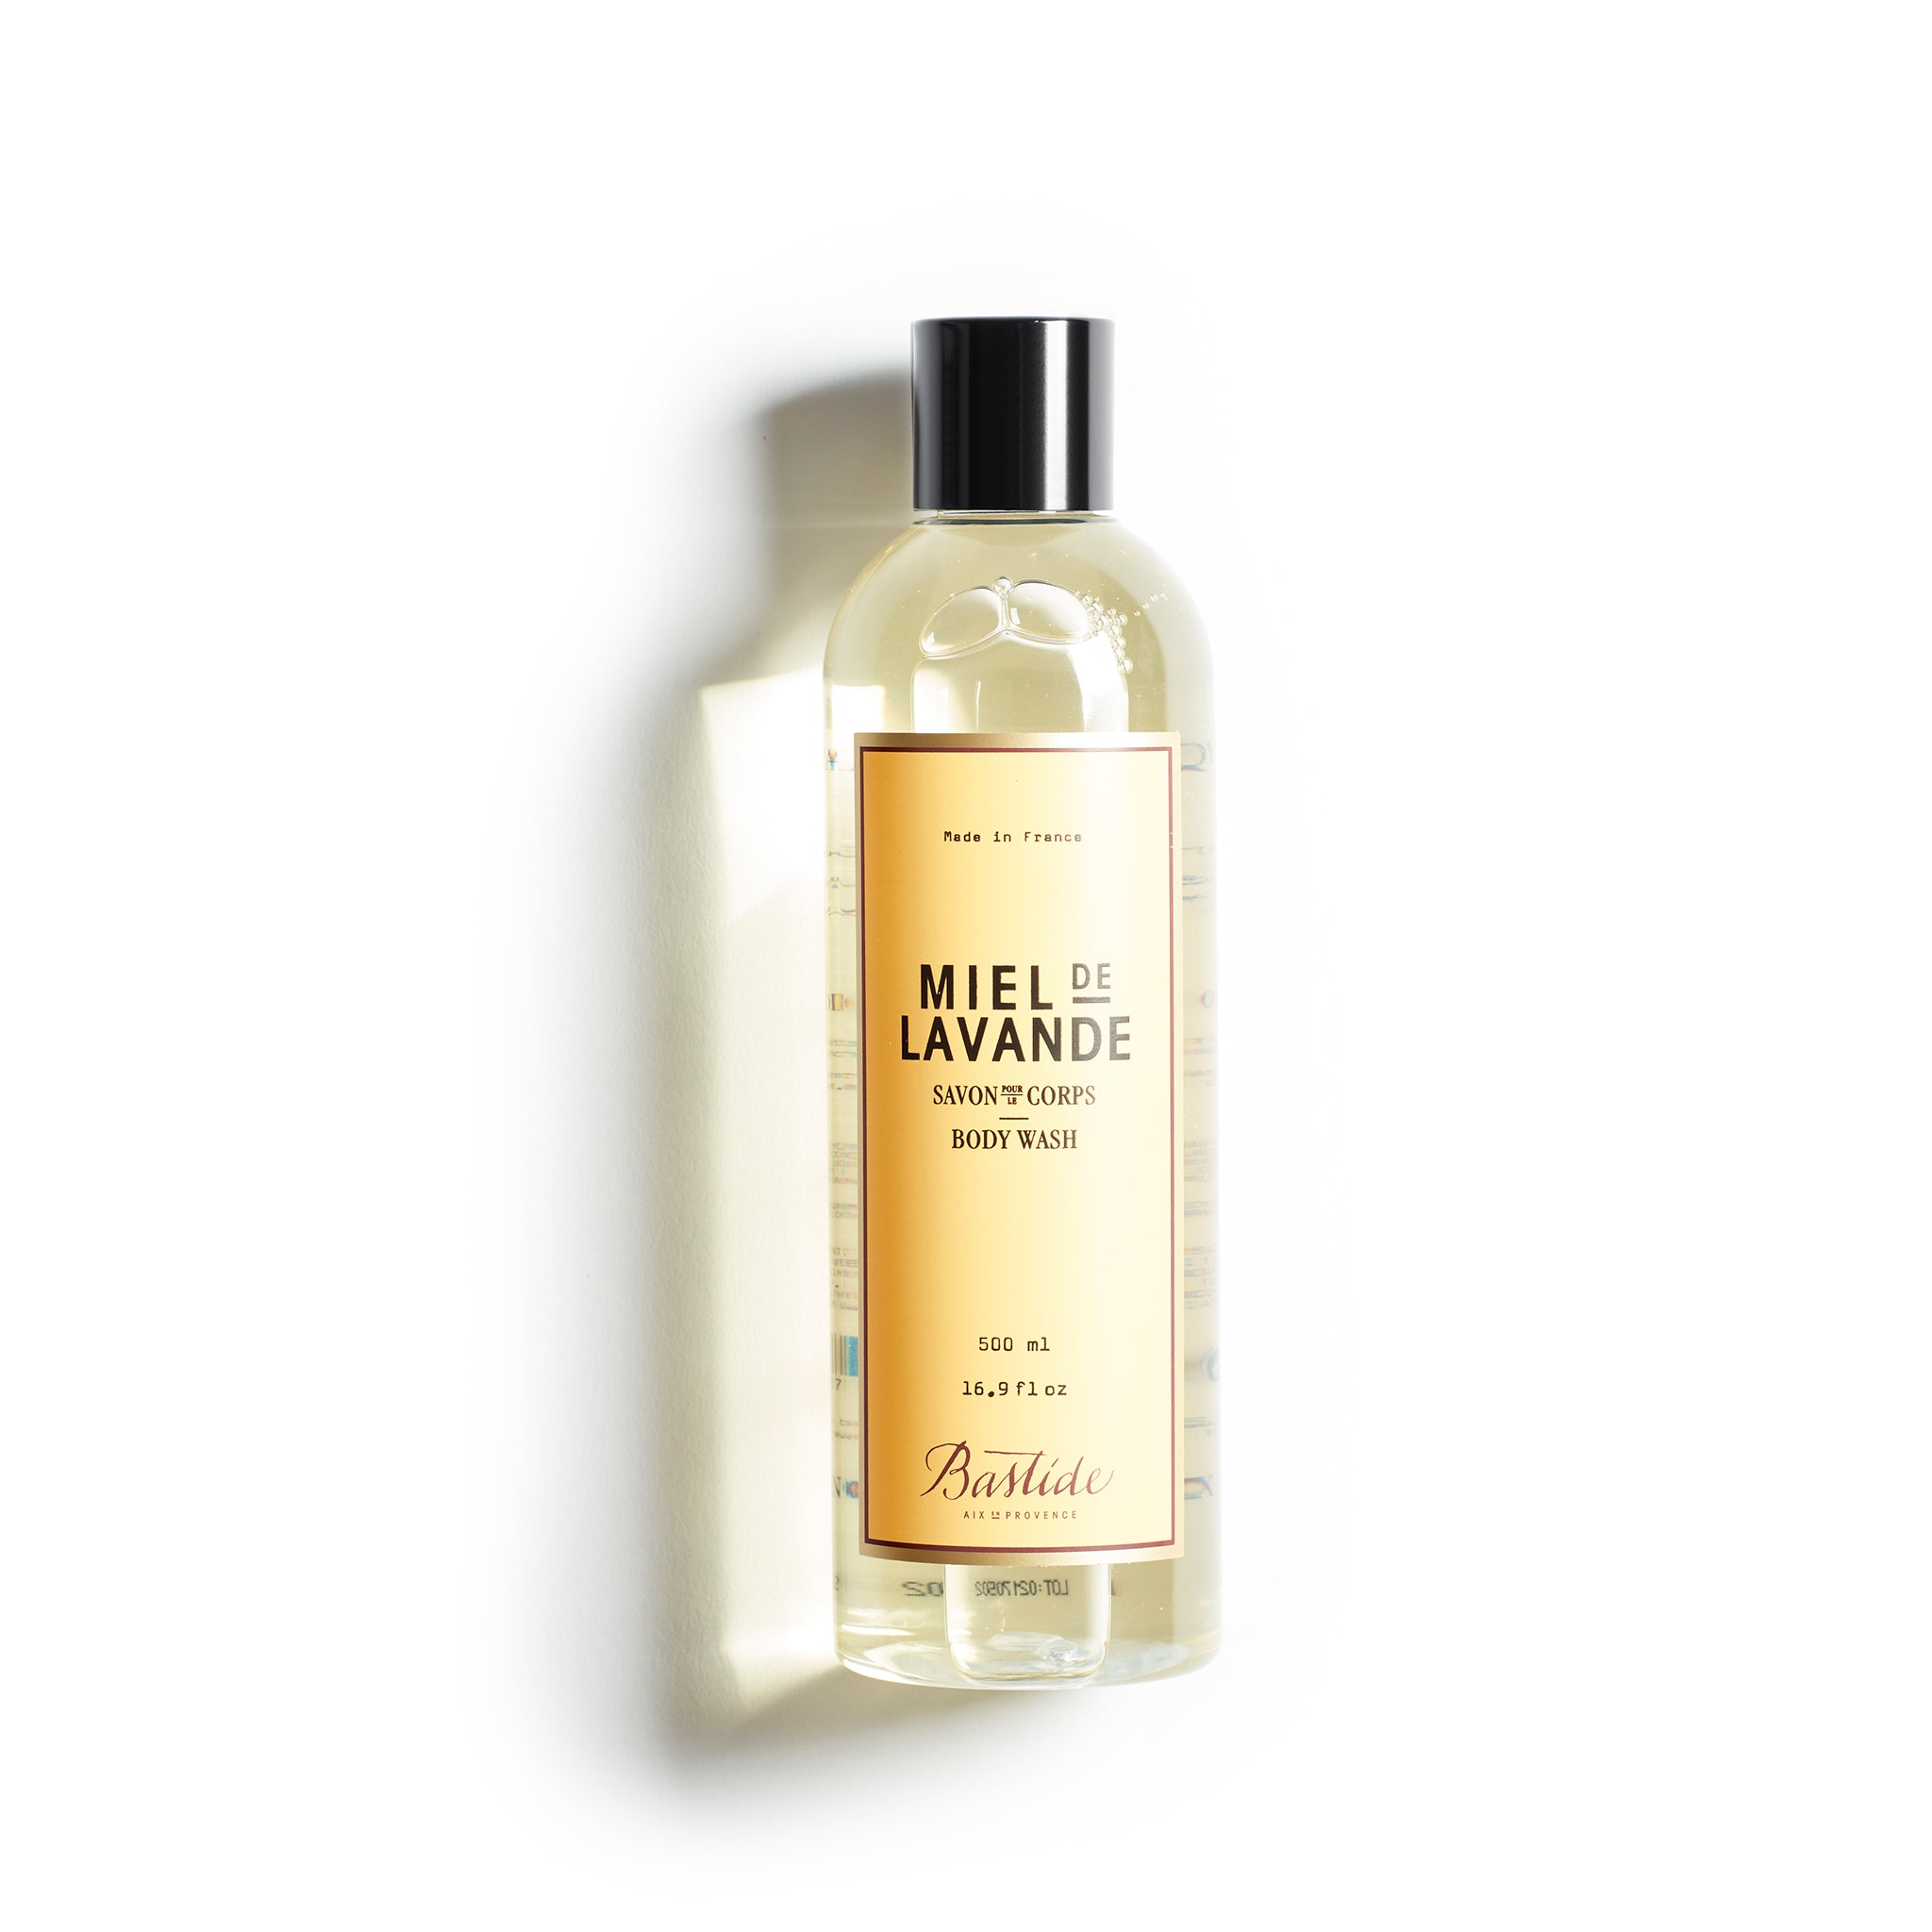 Miel de Lavande Body Wash by Bastide